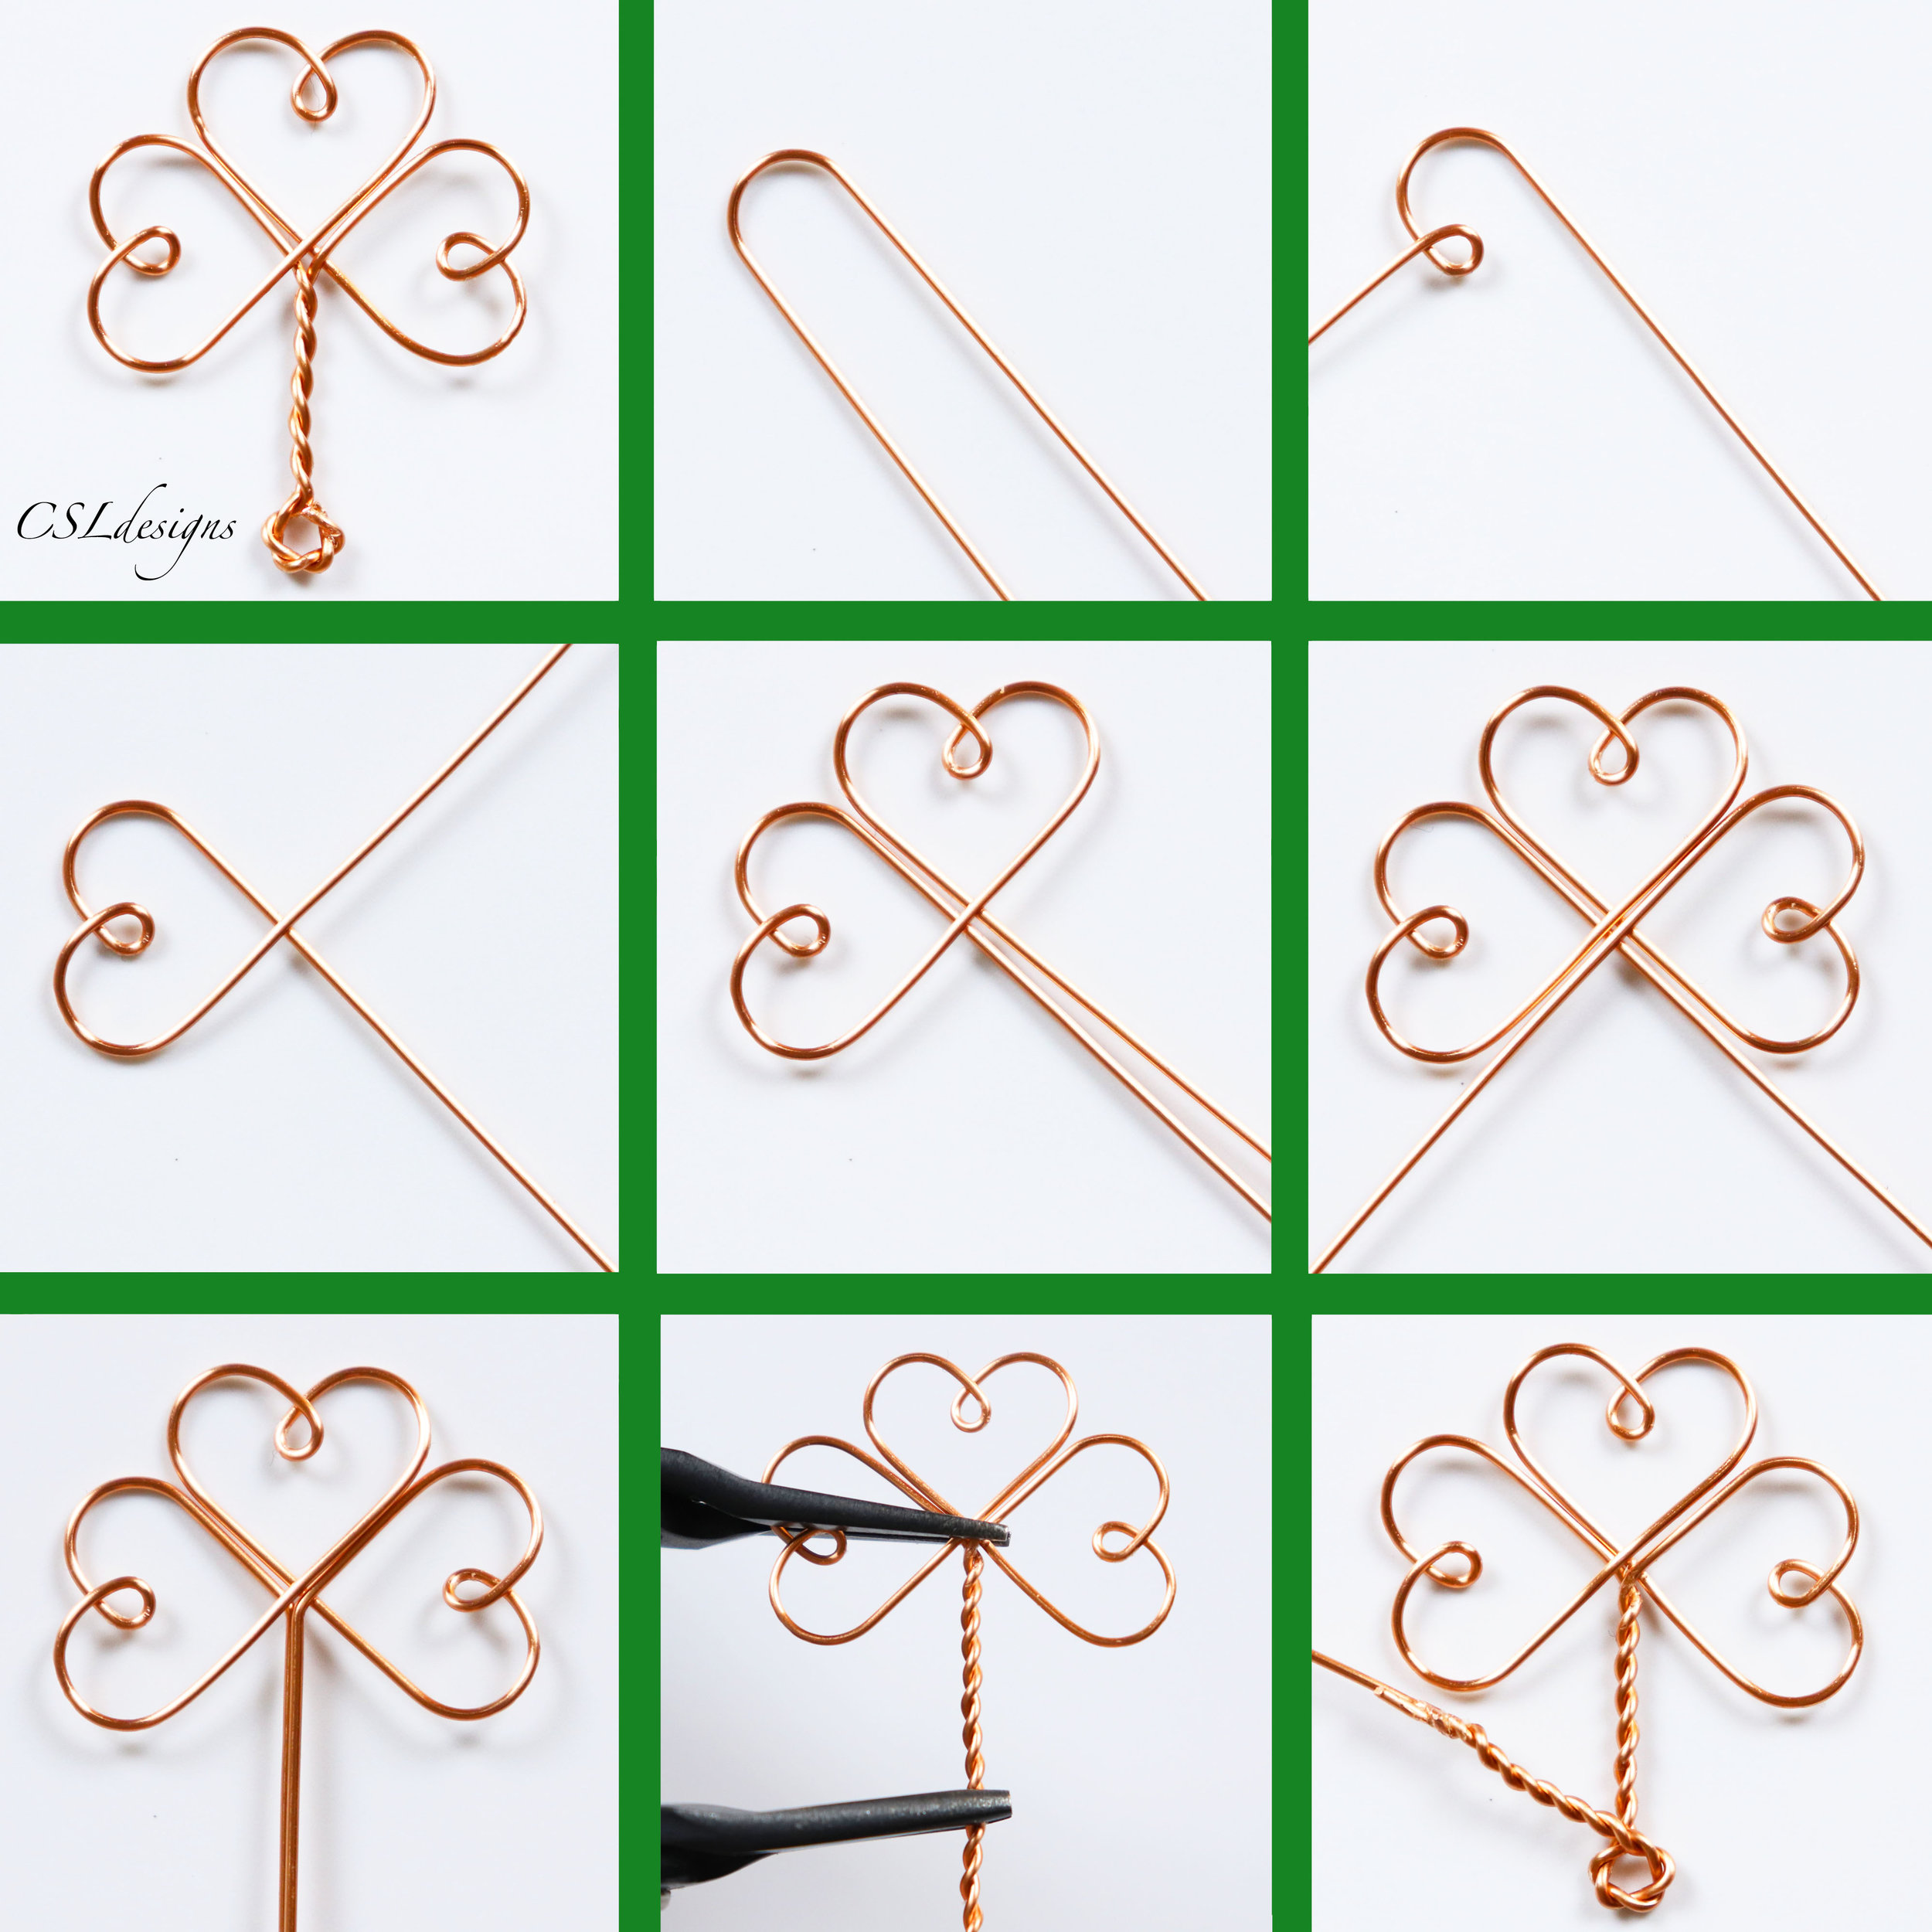 Celtic wirework clover 9 in 1.jpg